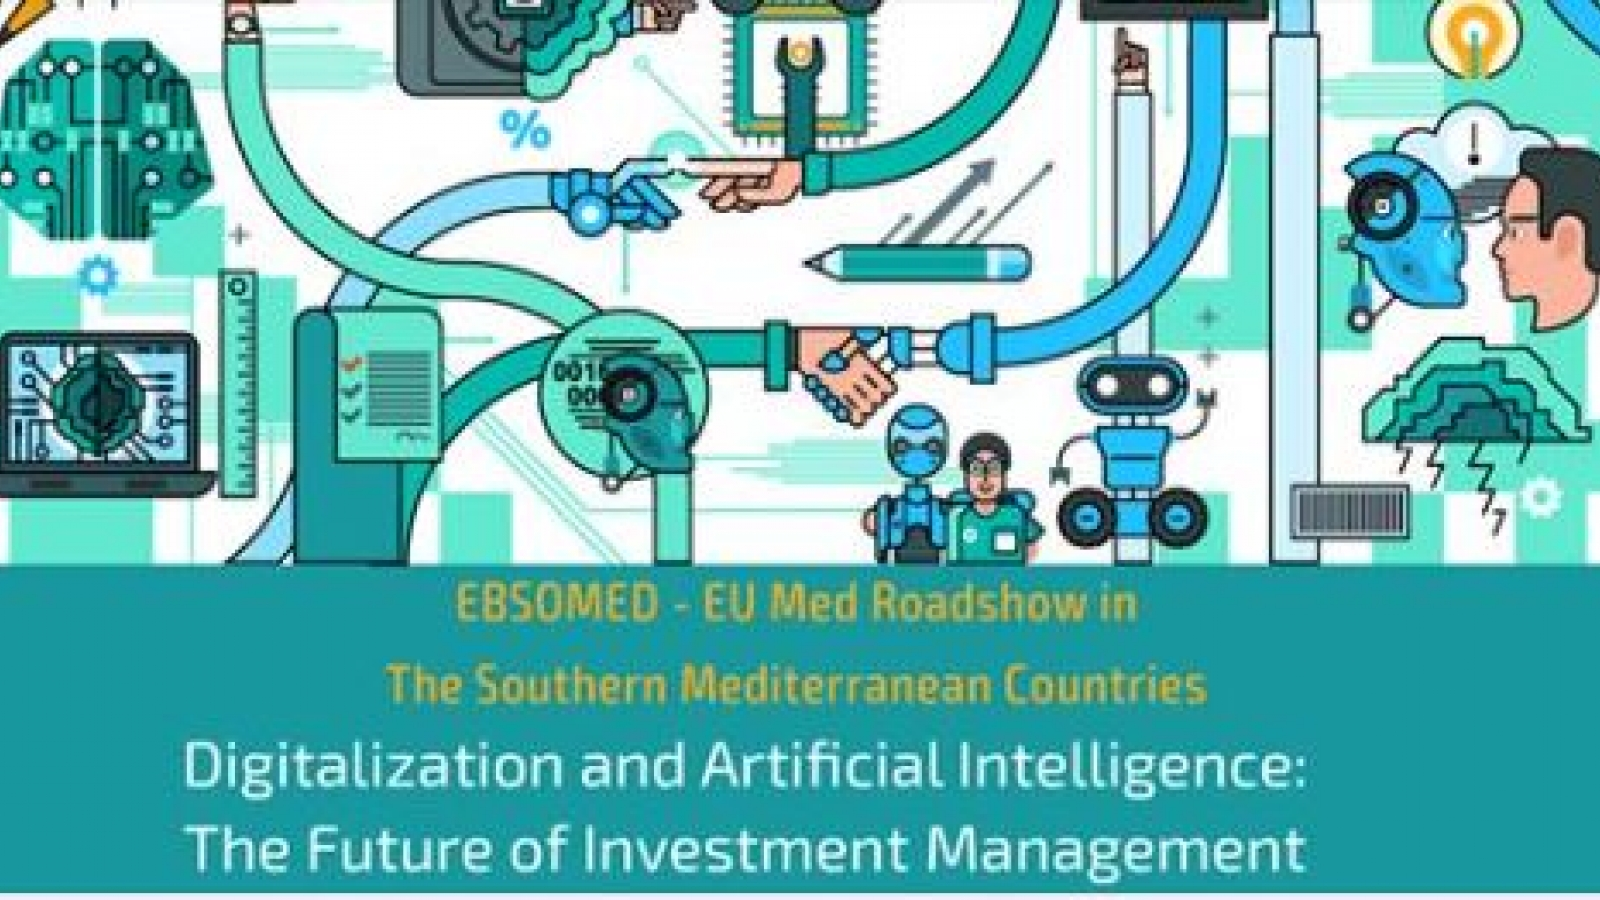 EBSOMed Roadshow on Digitalization and Artificial Intelligence in the Euro-Mediterranean region